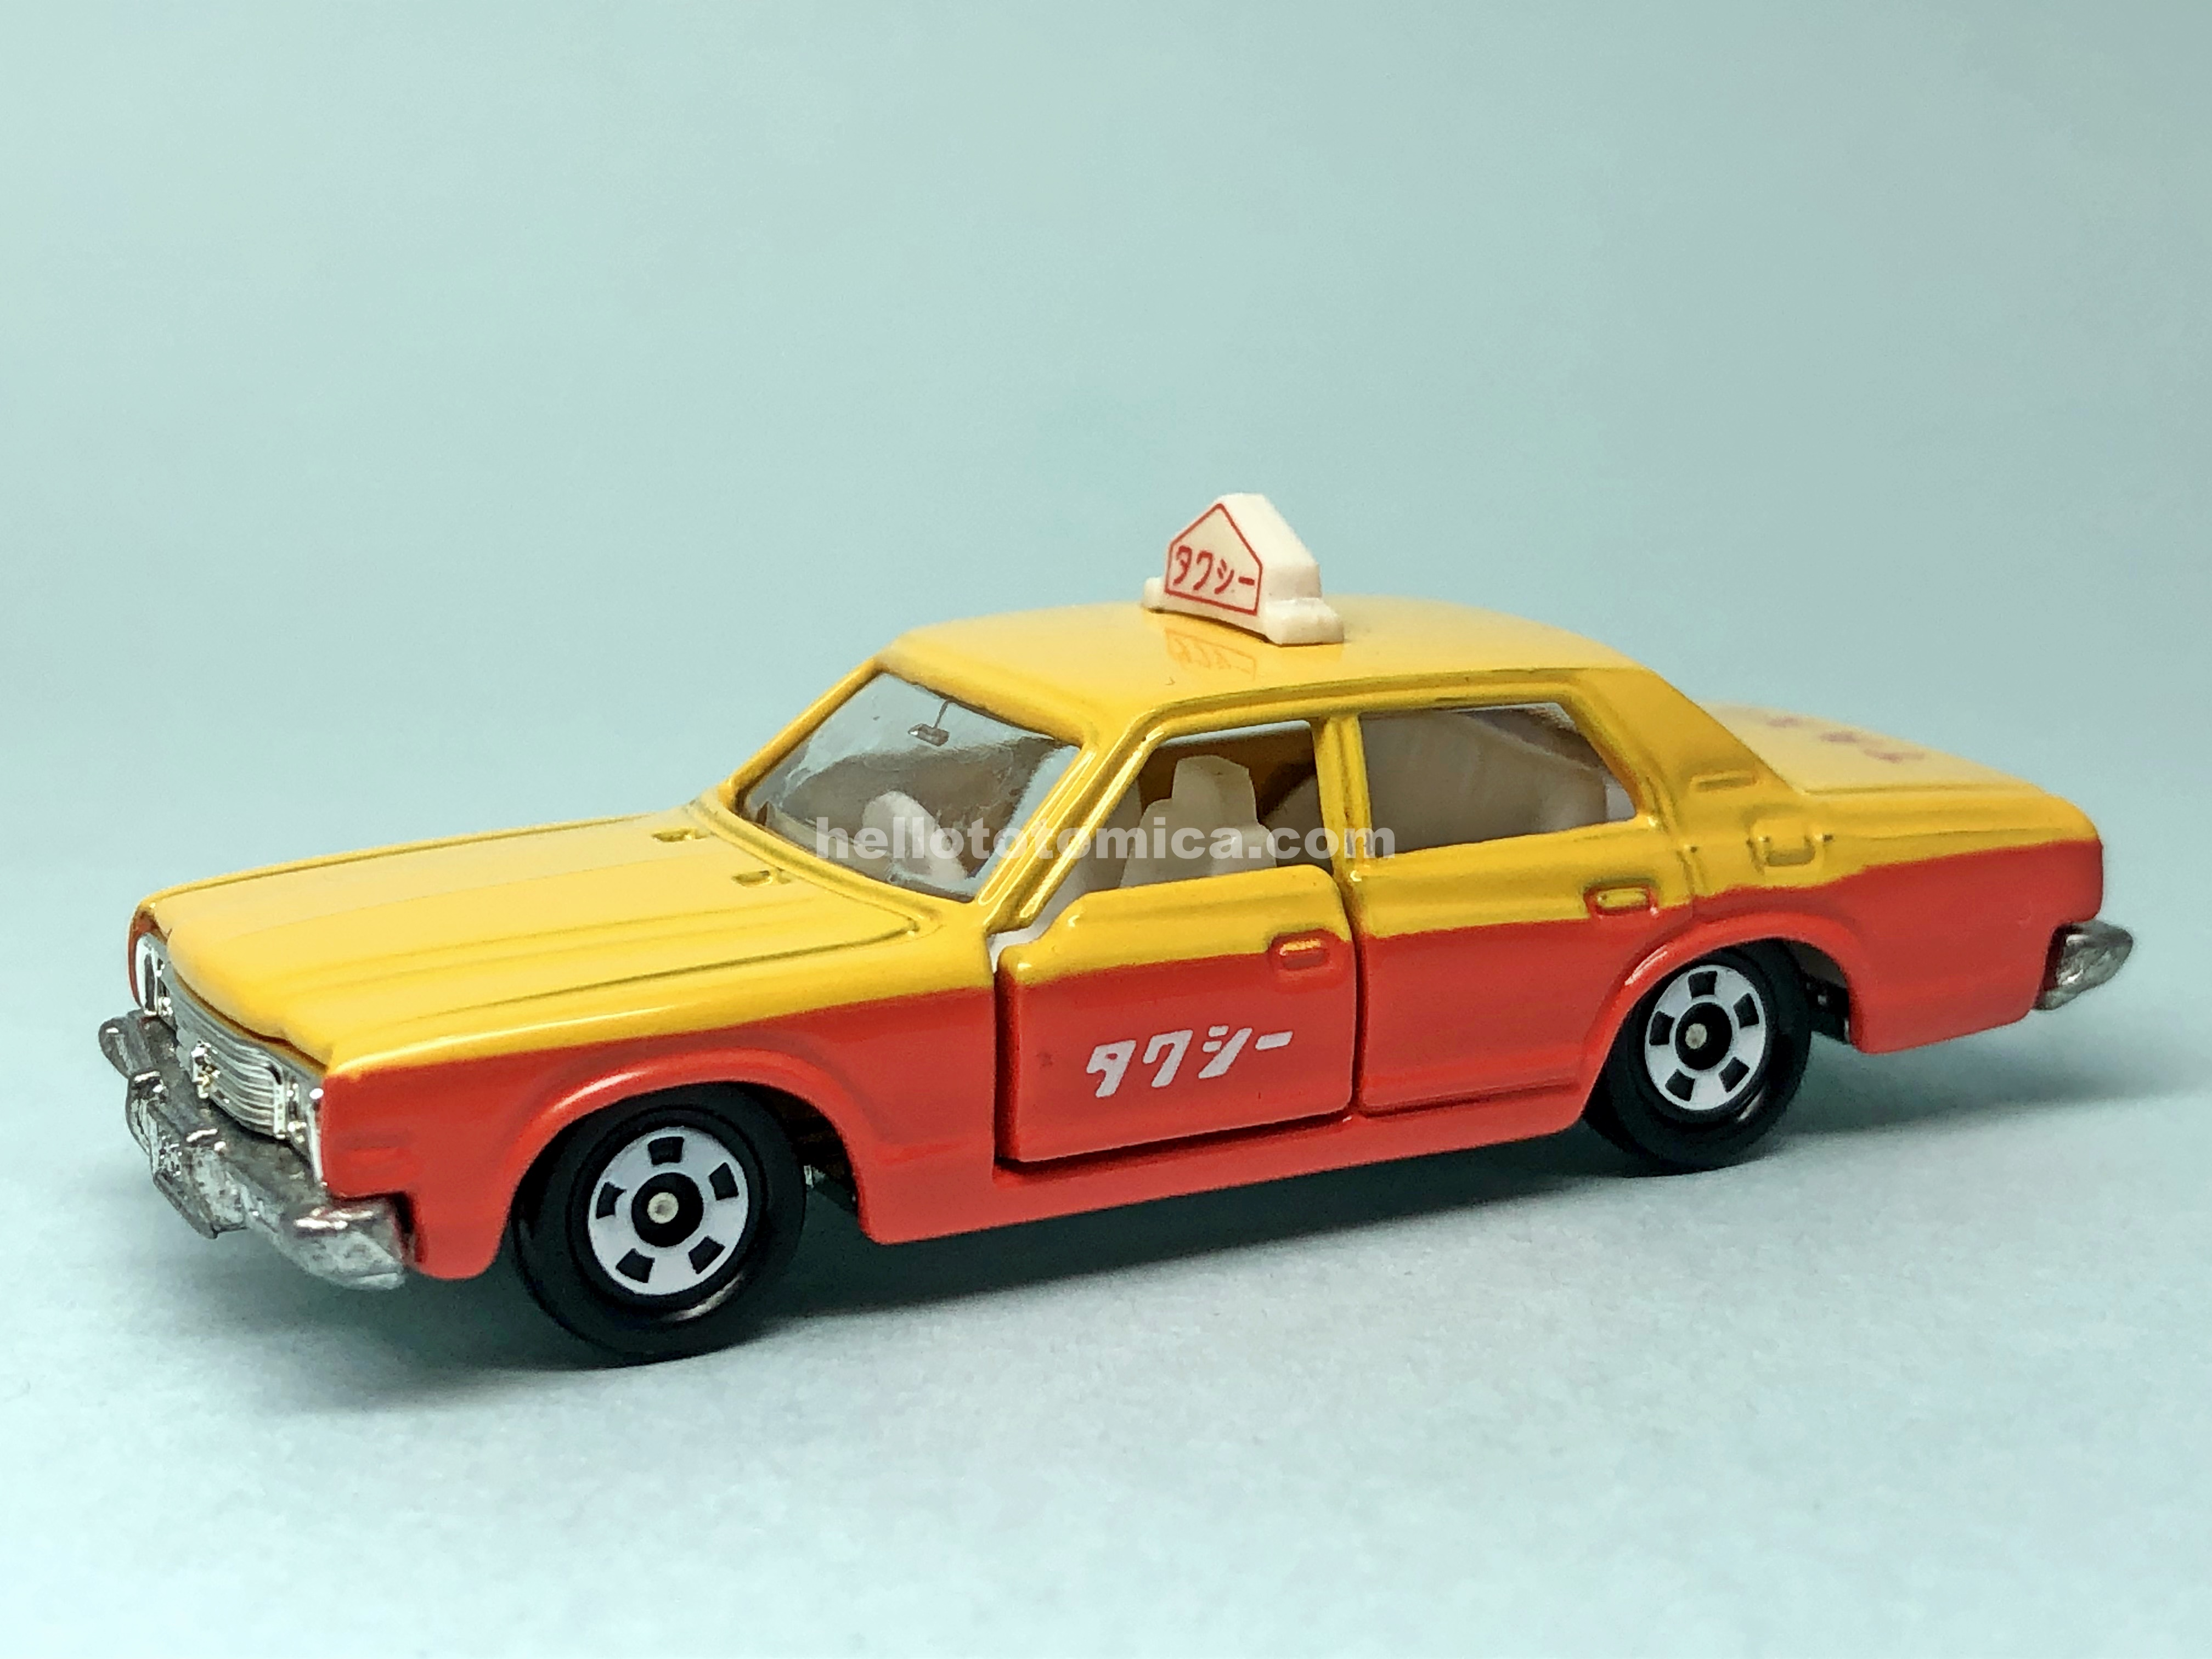 110-1 TOYOTA CROWN TAXI